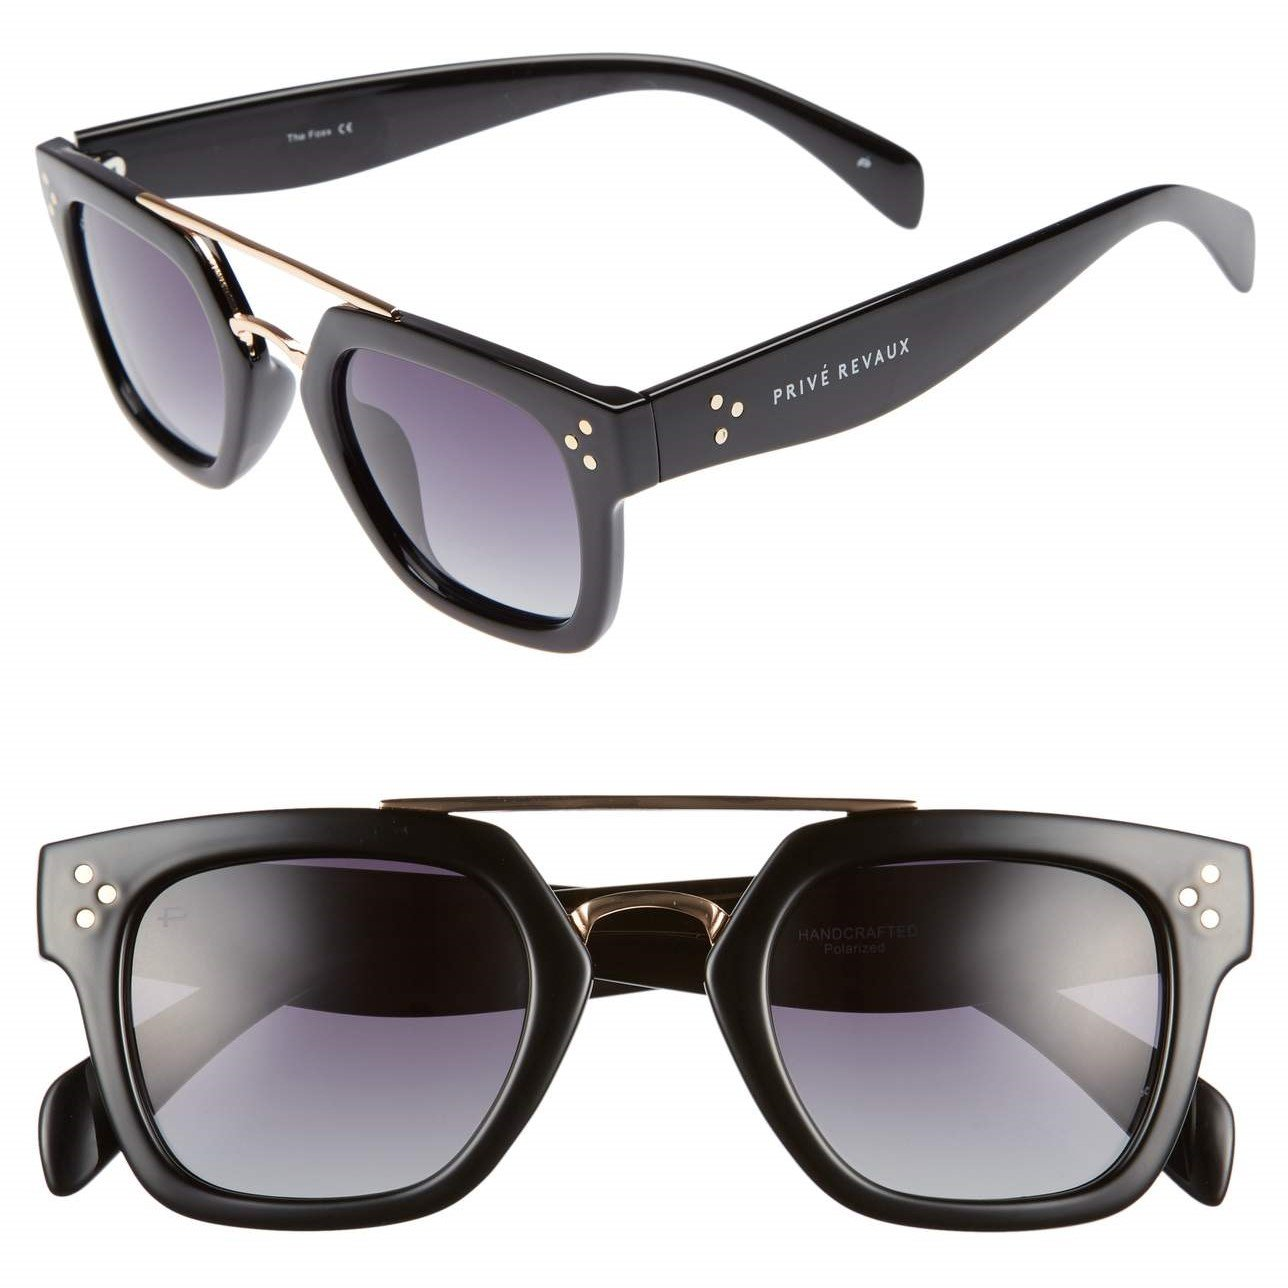 "cedd40749b57d Amazon.com  PRIVÉ REVAUX ICON Collection ""The Foxx"" Designer Polarized  Geometric Sunglasses  Clothing"